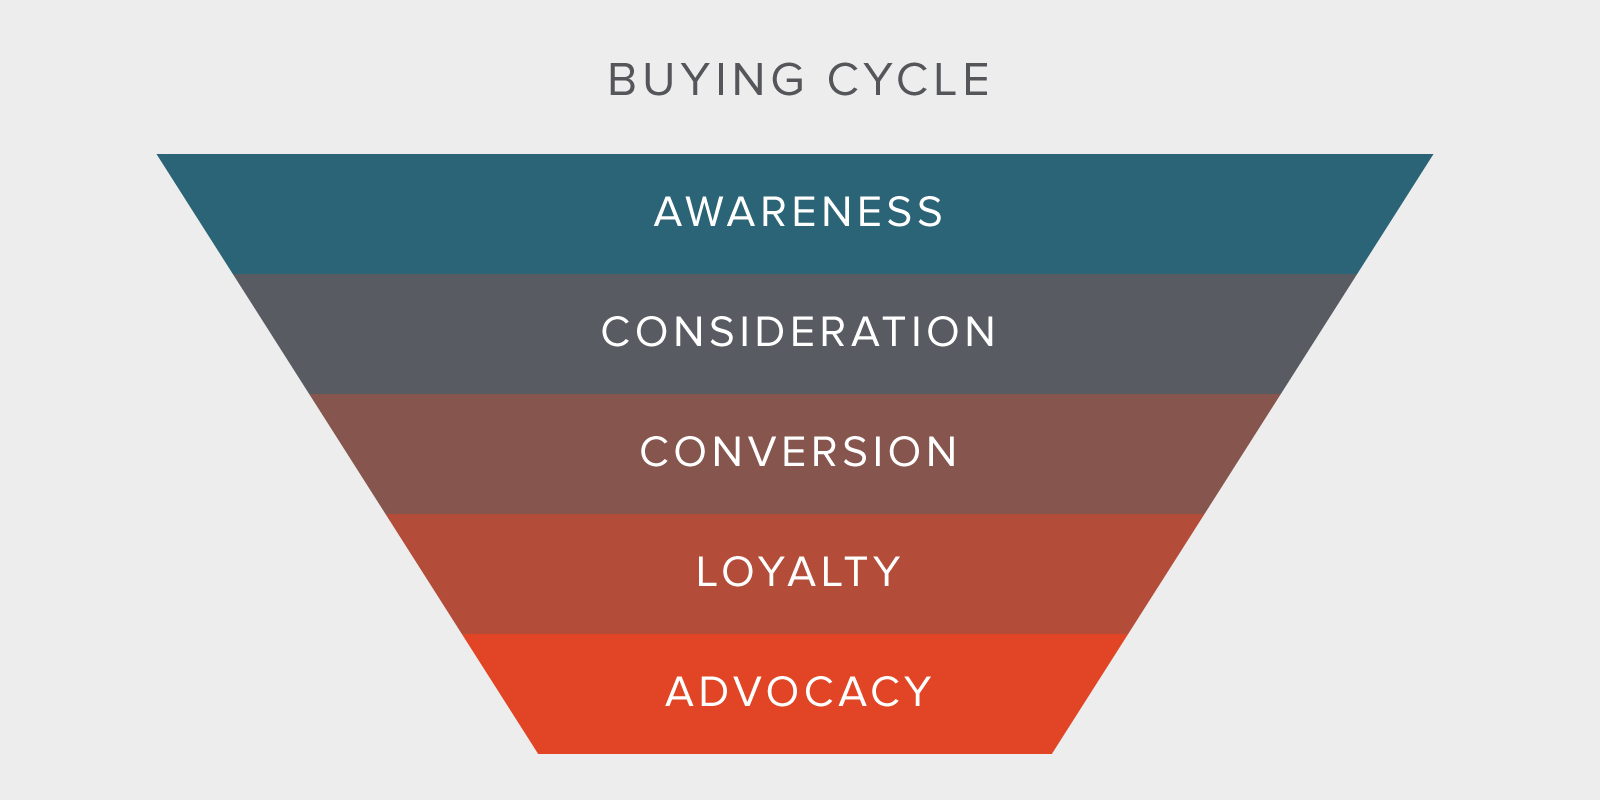 The buying cycle: awareness, consideration, conversion, loyalty, advocacy